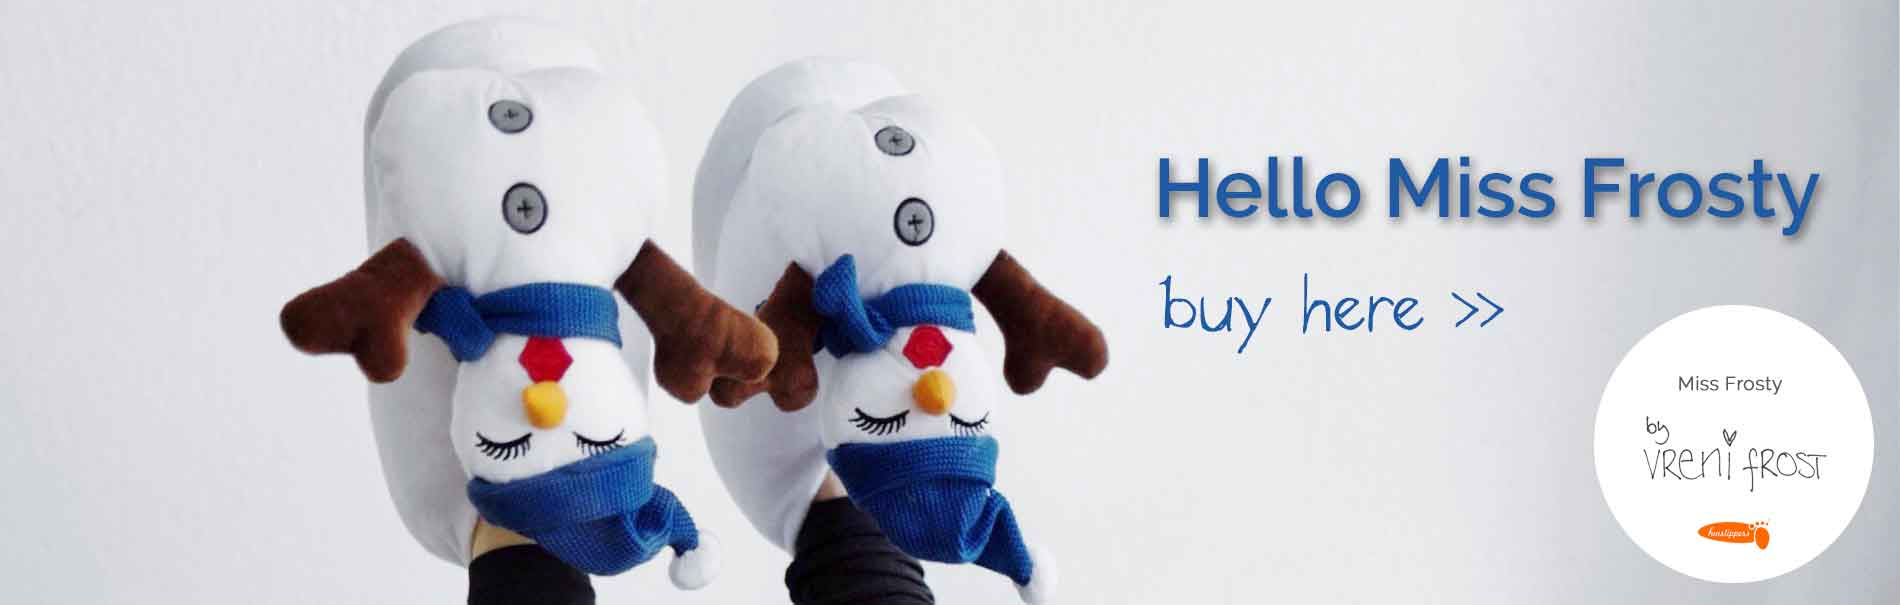 buy warm snowman slippers